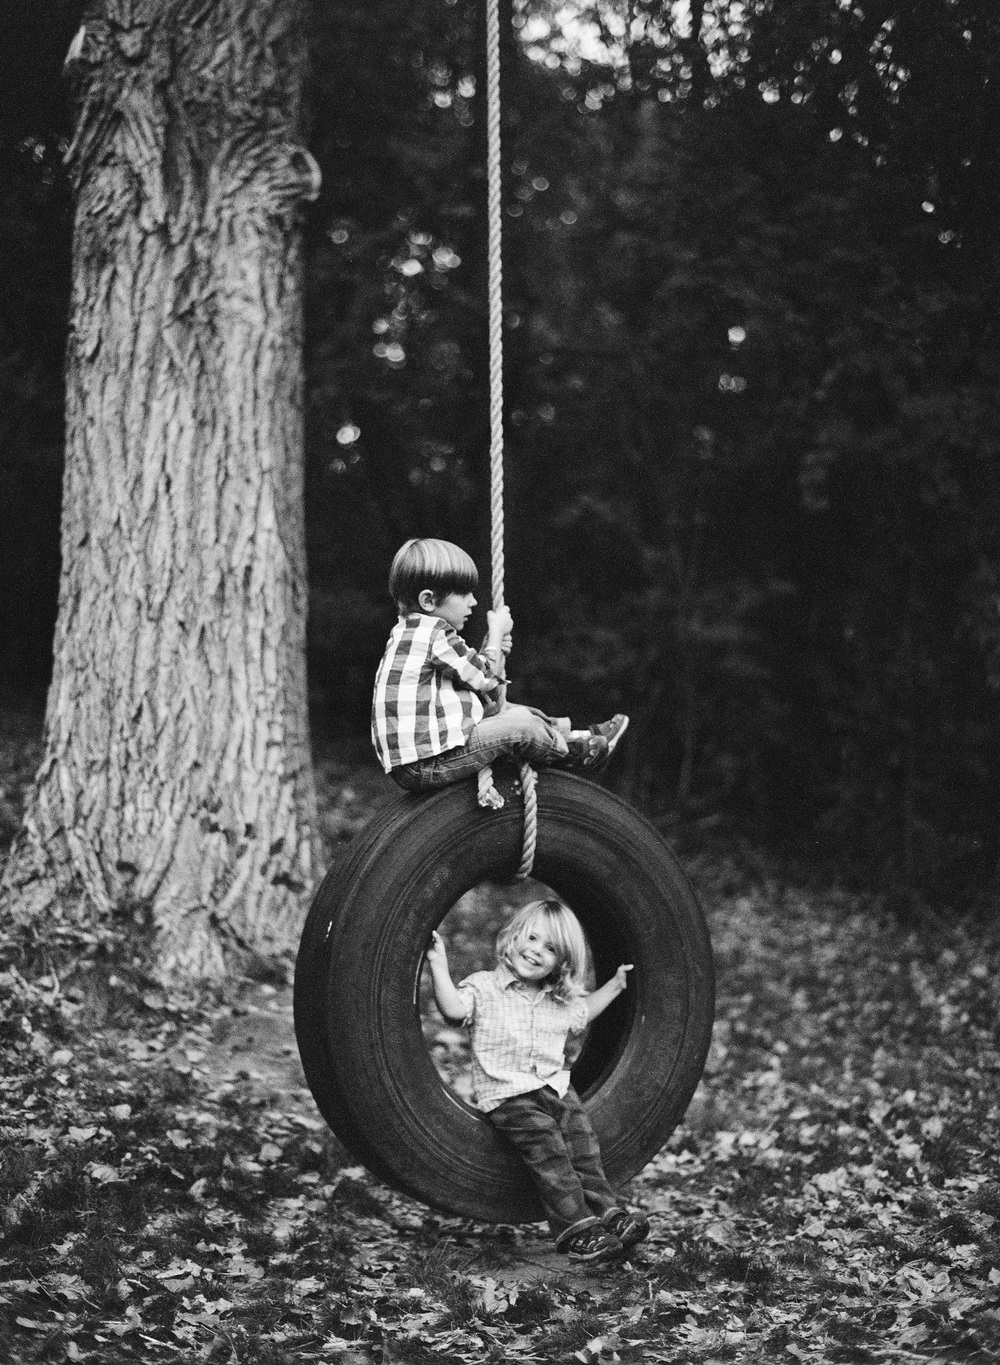 wisconsin fall mini sessions 2015 with Lexia Frank Photography at Camp Wandawega. Lexia is a fine art film photographer in wisconsin and worldwide